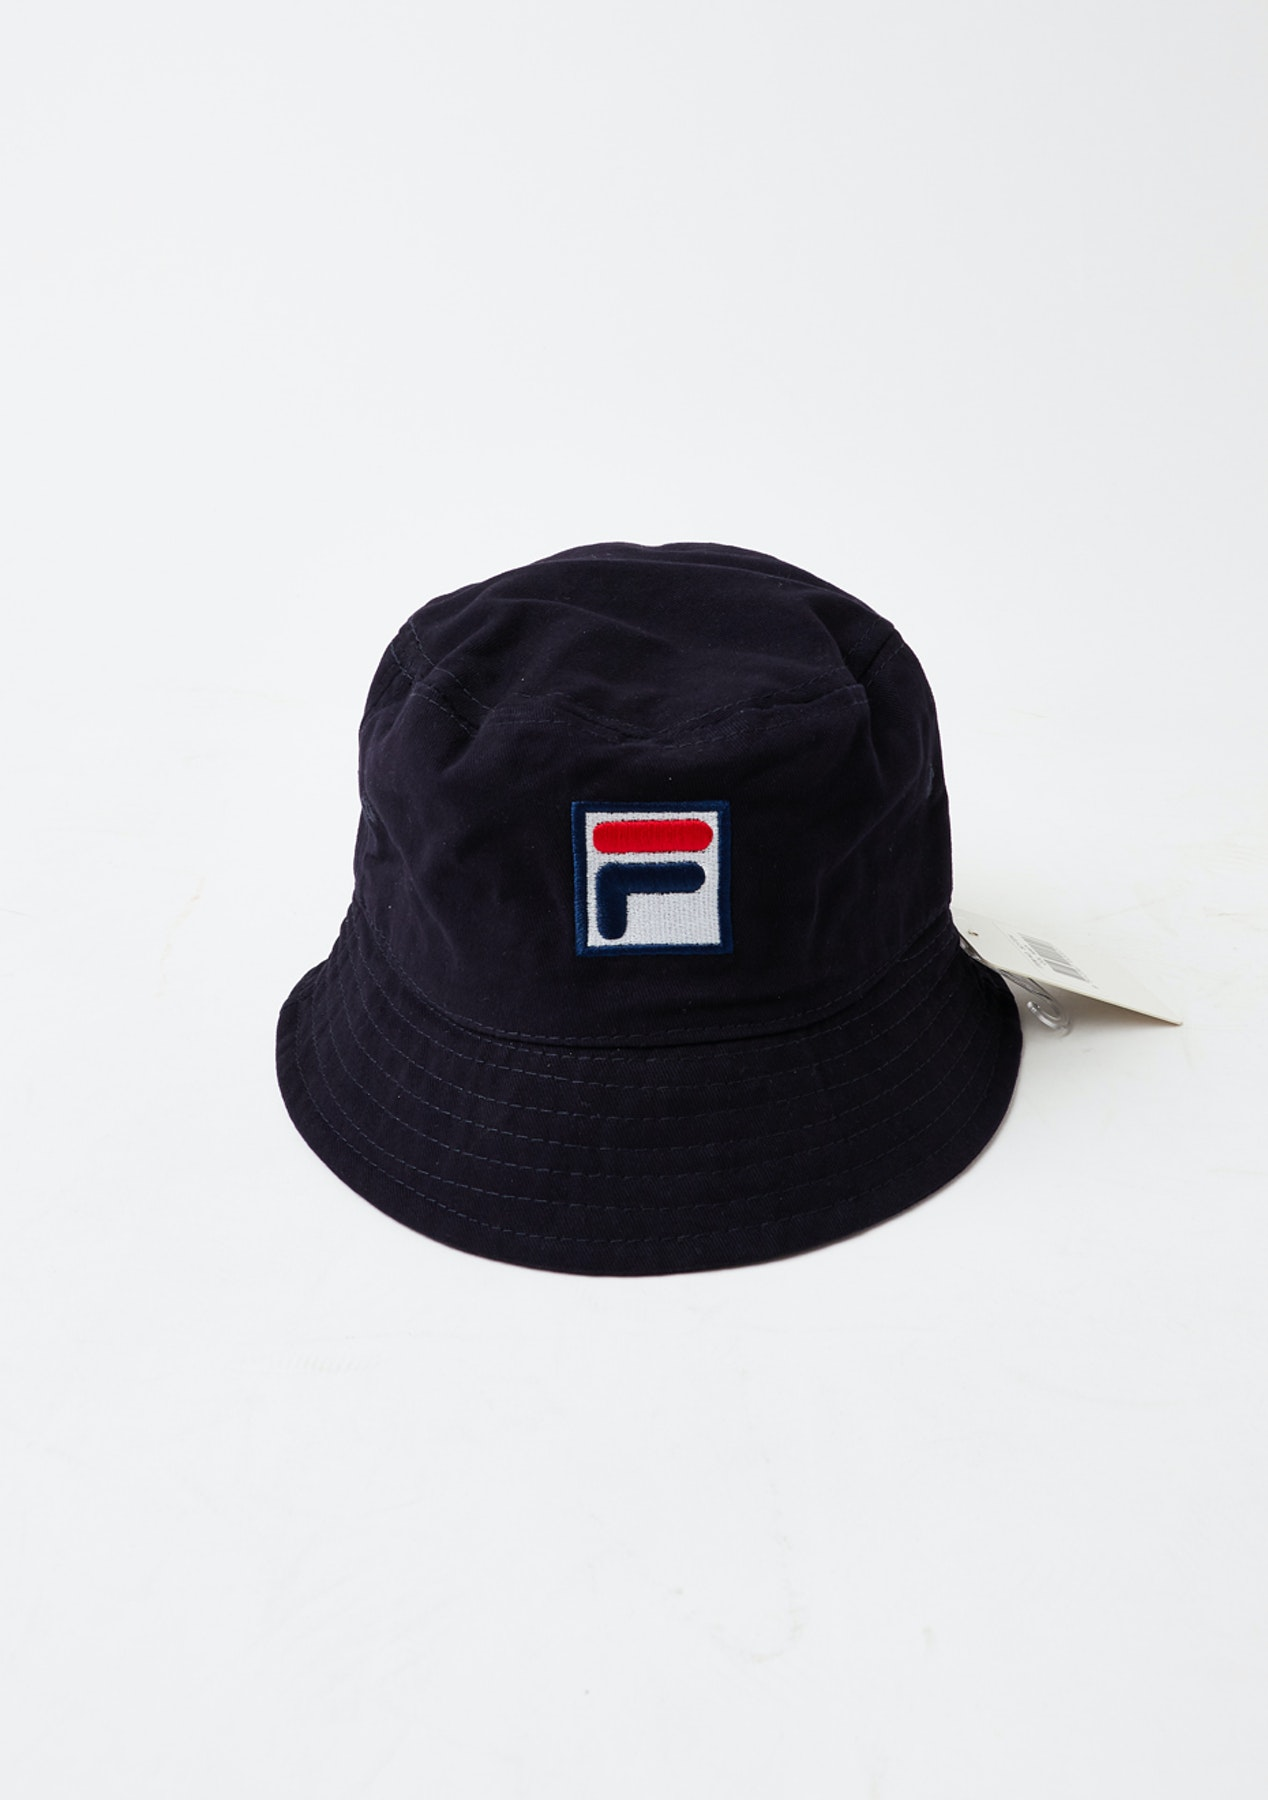 067463cba72 Fila Bucket Hat - Navy - Express Shipping Champion + More - Onceit